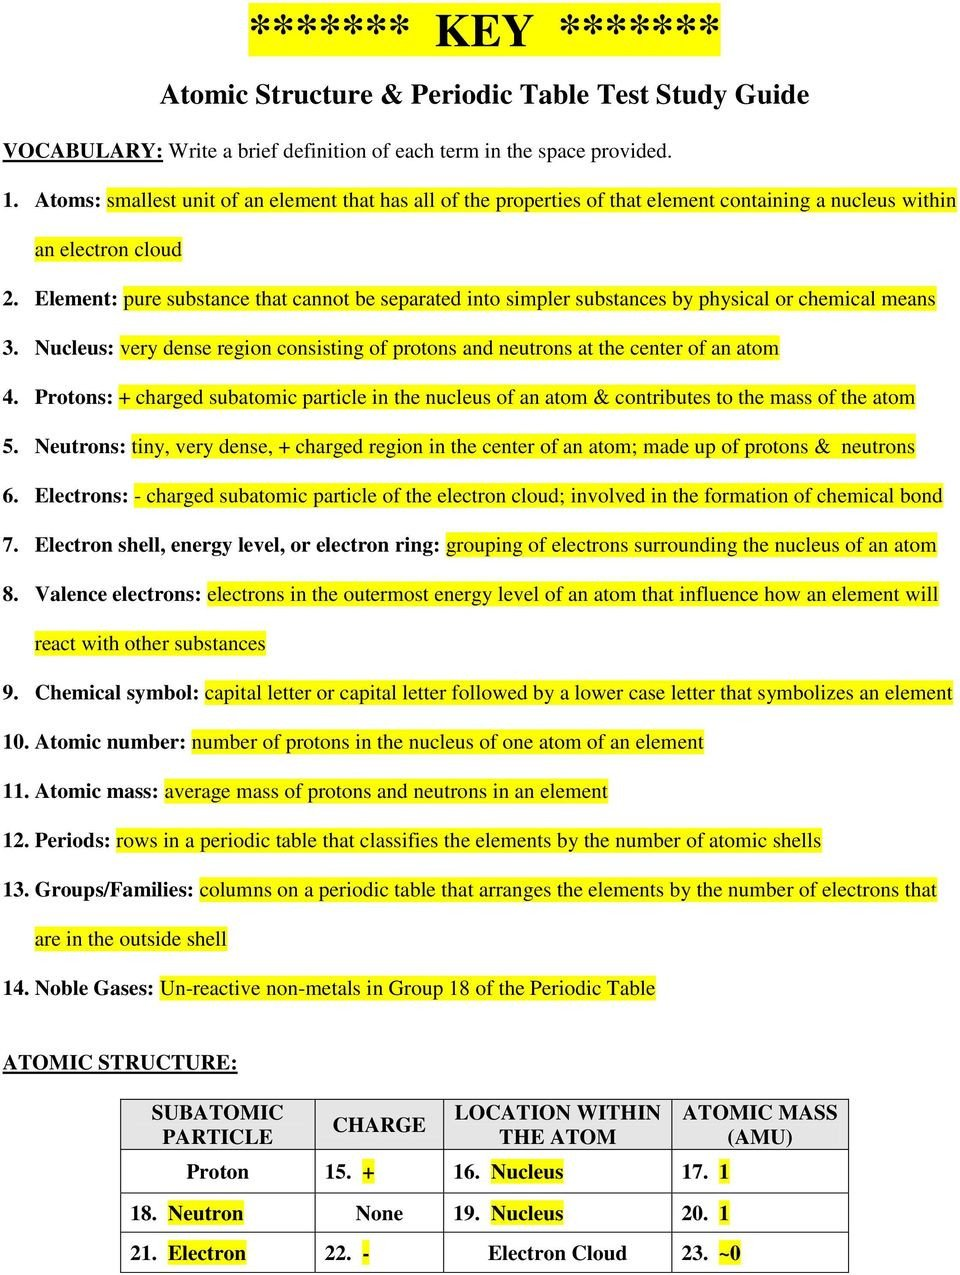 Periodic Table Vocabulary Worksheet Key atomic Structure & Periodic Table Test Study